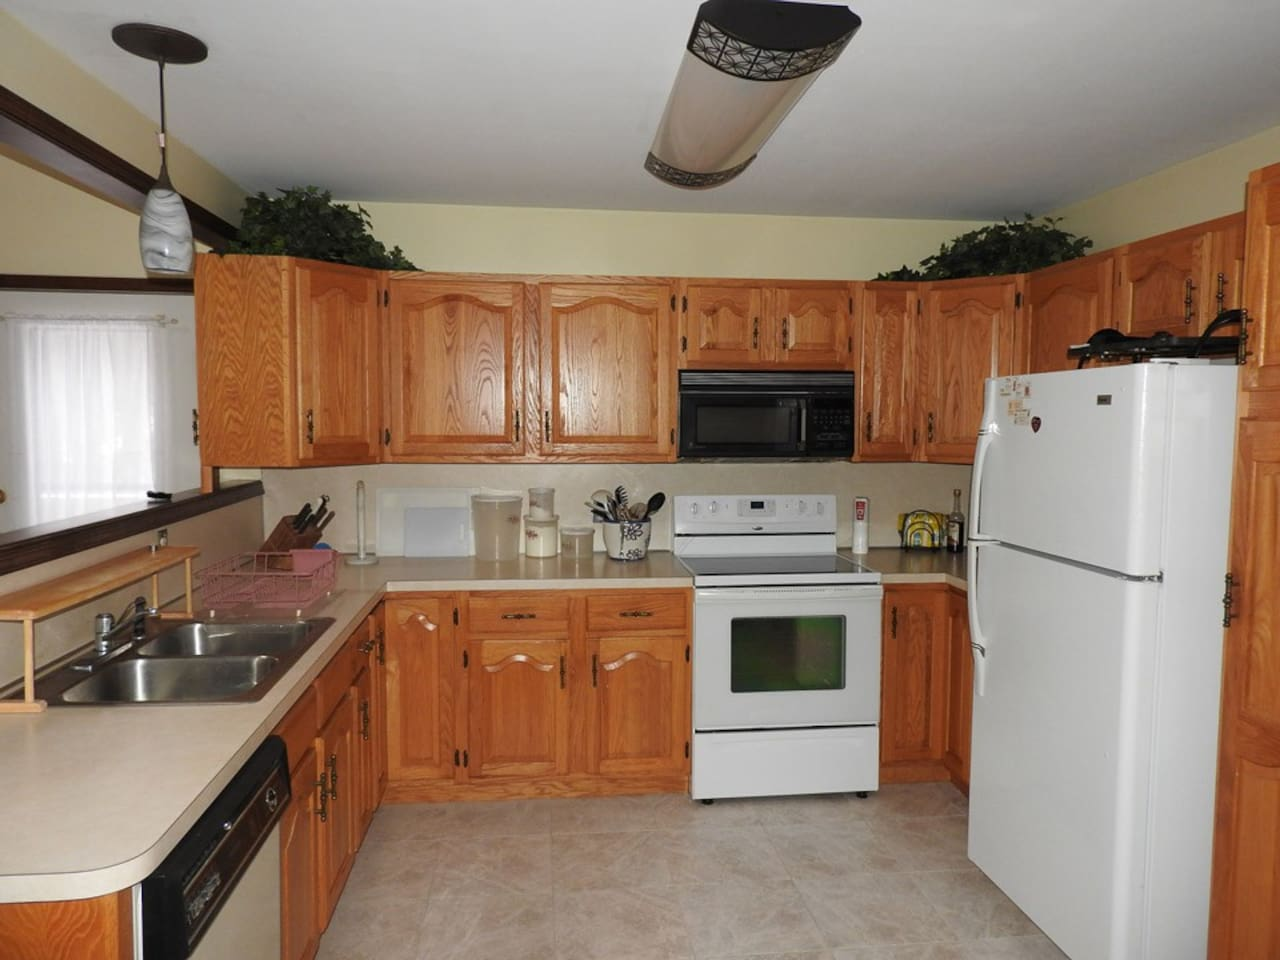 brier crest woods 104t houses for rent in blakeslee